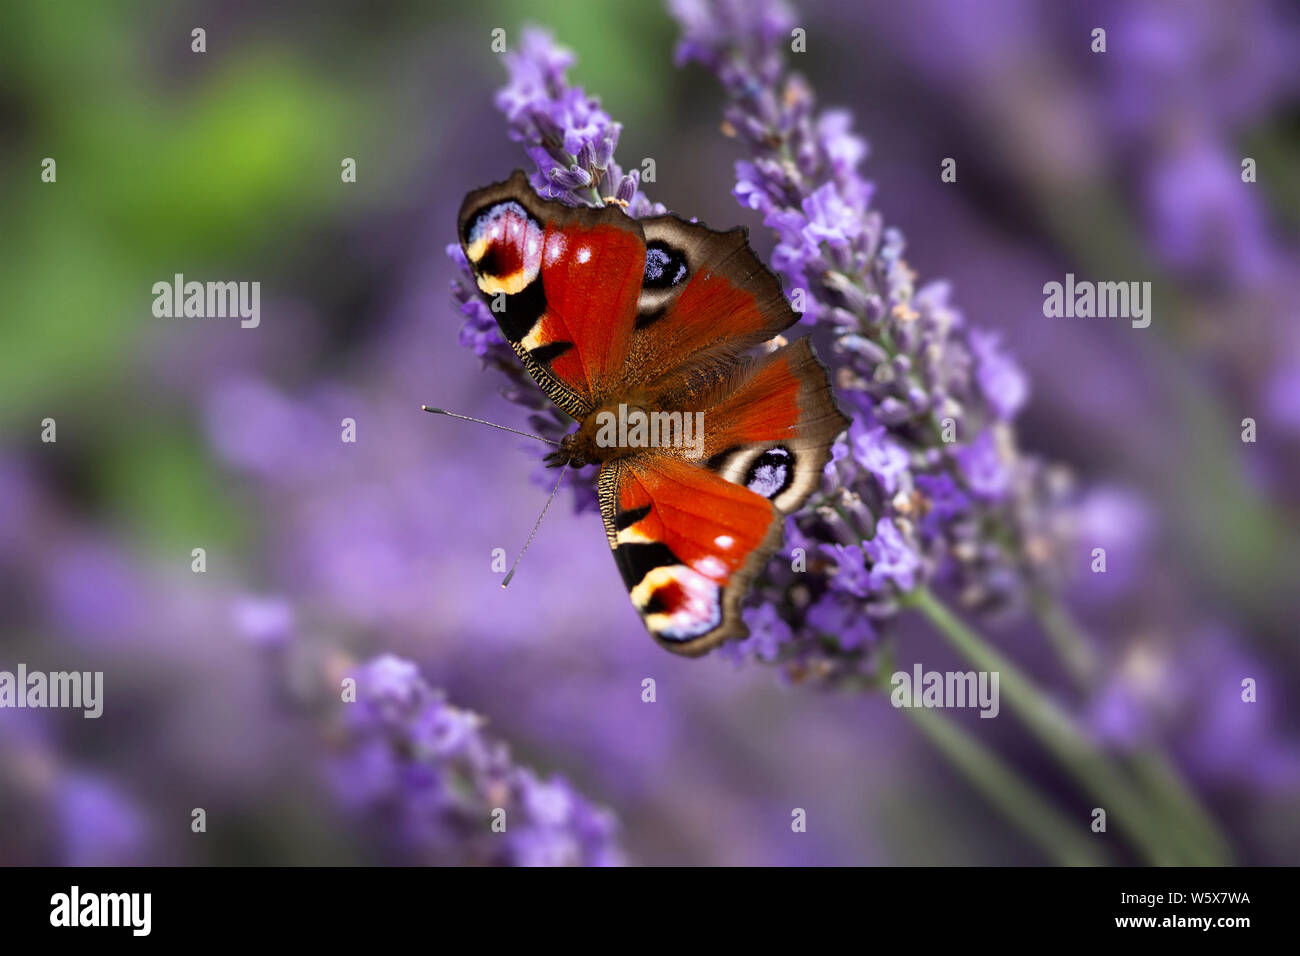 Aglais io, common name Peacock Butterfly, on lavender flowers Stock Photo